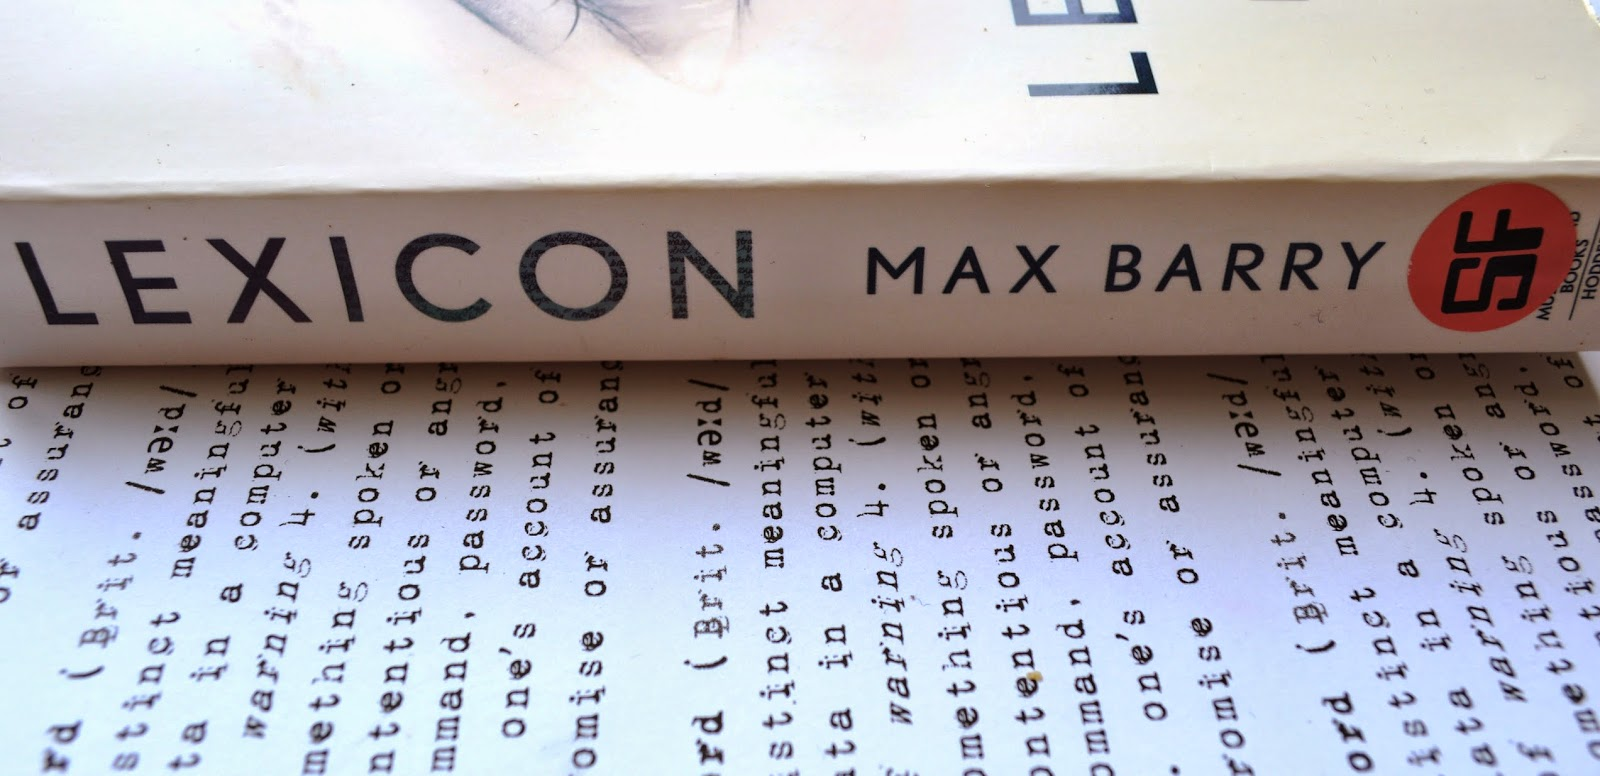 Max Barry, Lexicon, paperback, ISBN: 978144476480, UK edition, photograph, cover, review, book review, science fiction, words, novel semiotics, linguistics